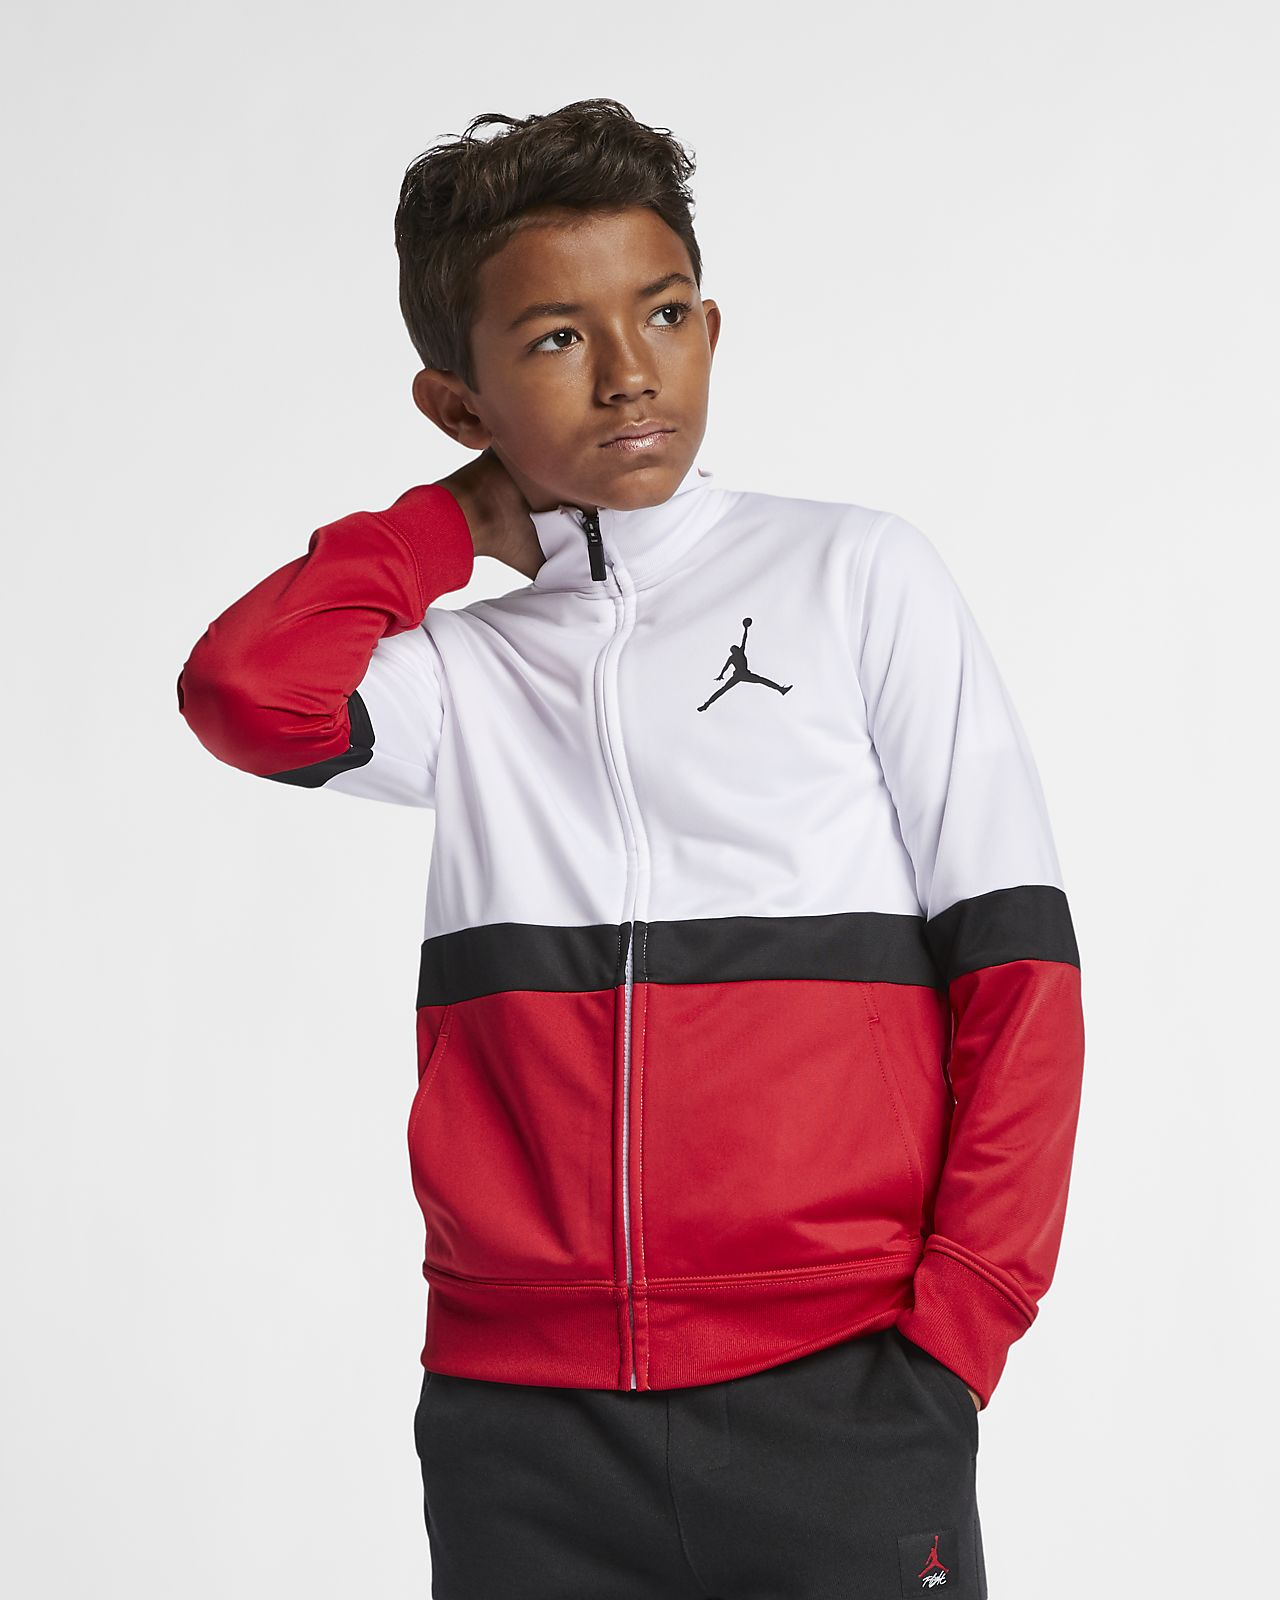 7ea71ad25a4bee Jordan Sportswear Diamond Older Kids  (Boys ) Full-Zip Jacket. Nike ...